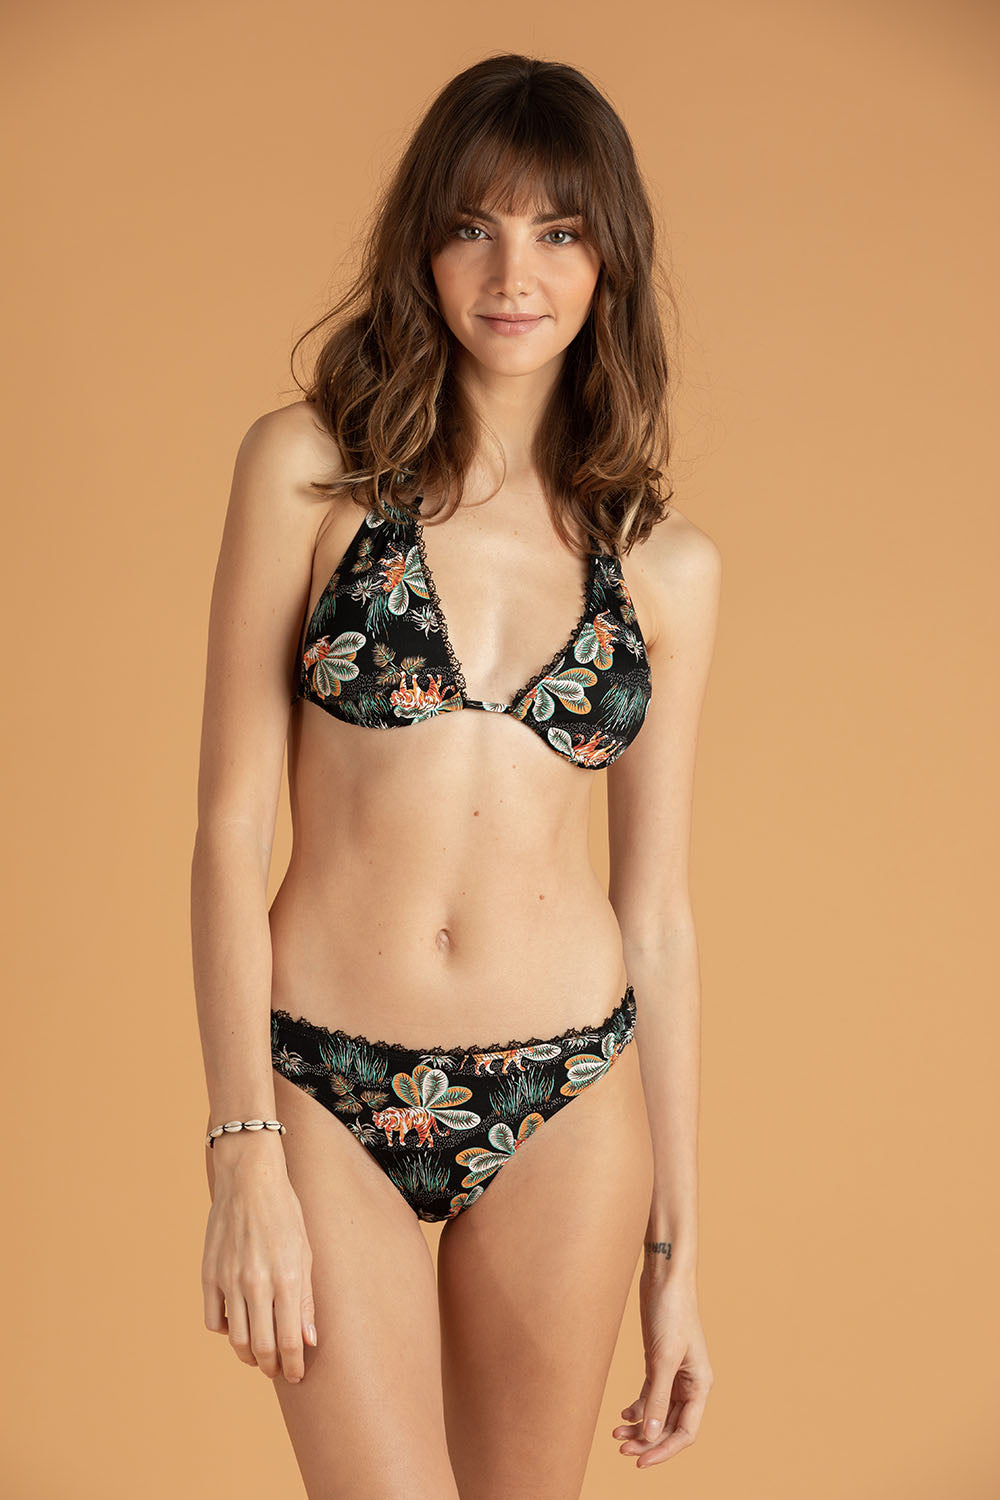 Bikini Top Molly Lace Trimmed - Black Tiger